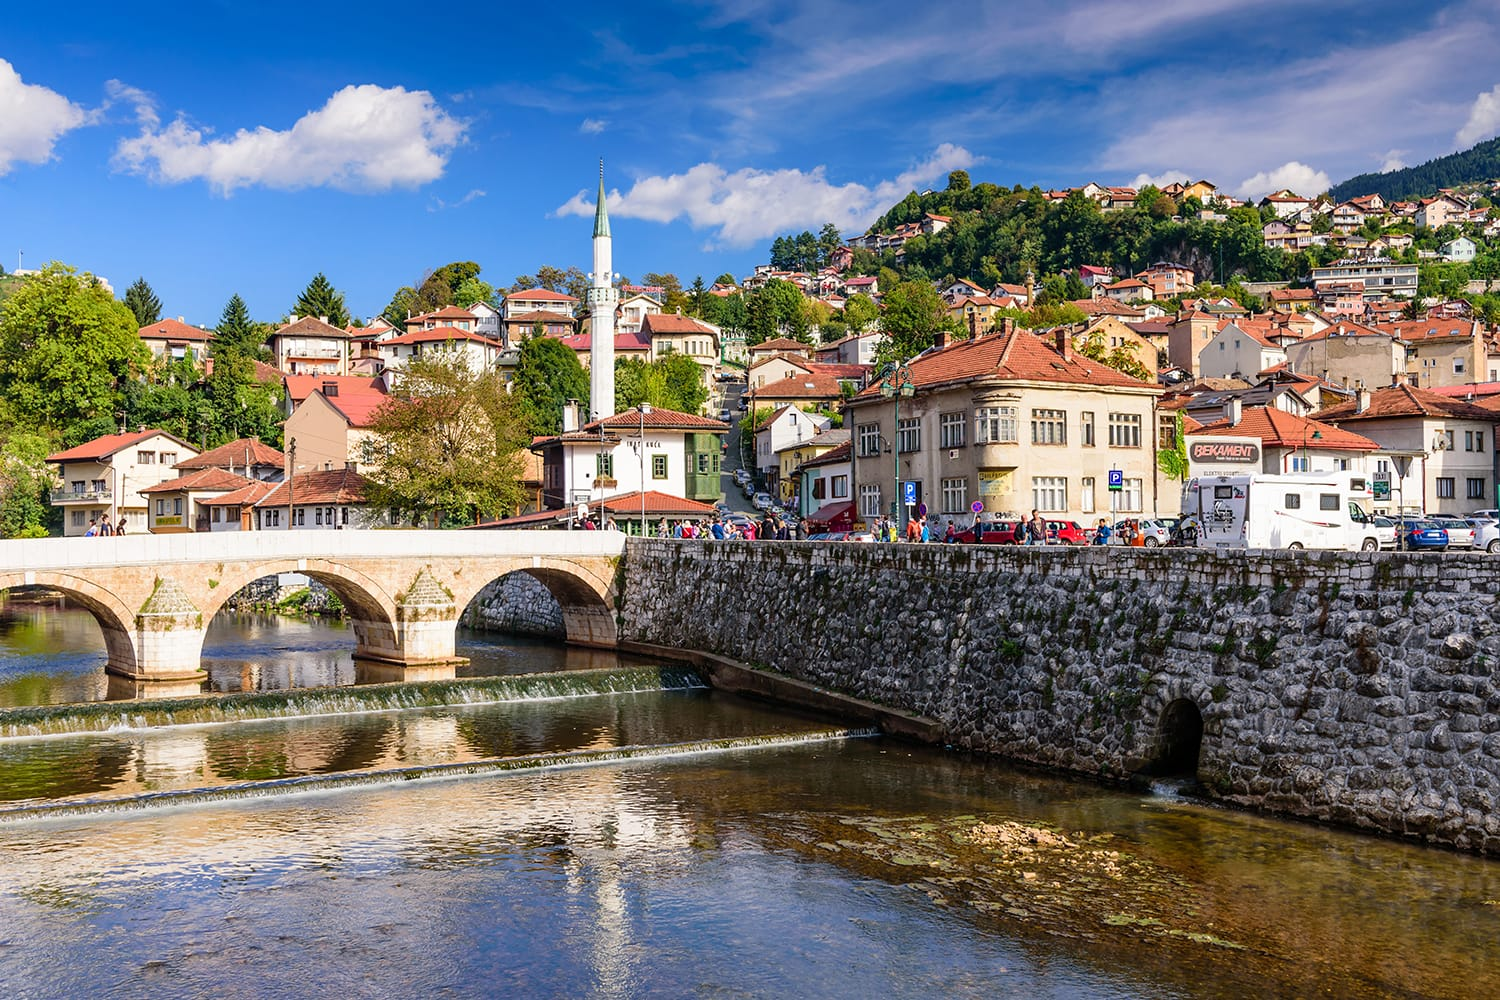 View of the historic centre of Sarajevo, capital city of Bosnia and Herzegovina